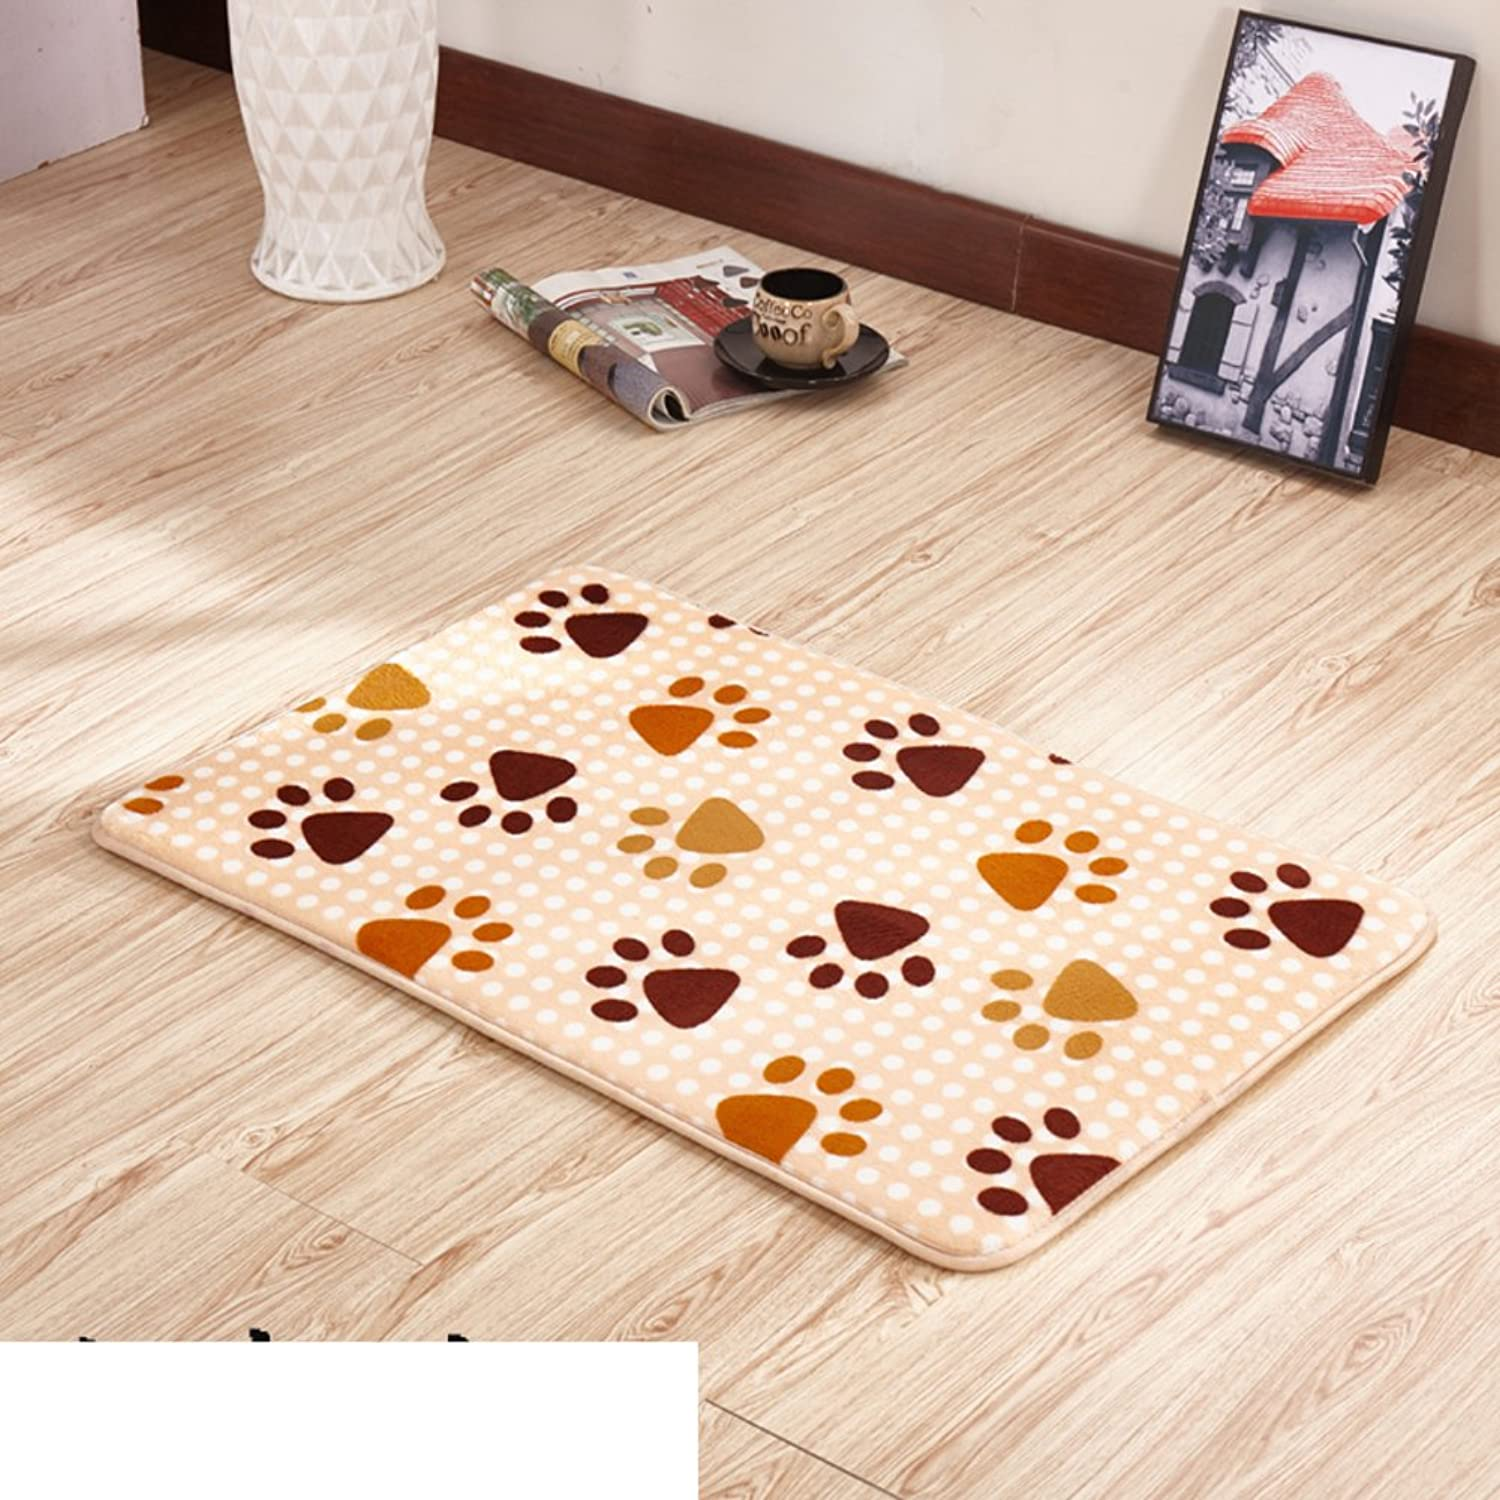 Thickened Household Door mats Bedroom Indoor mats Bathroom pratunam pad Kitchen Floor mats-J 100x200cm(39x79inch)